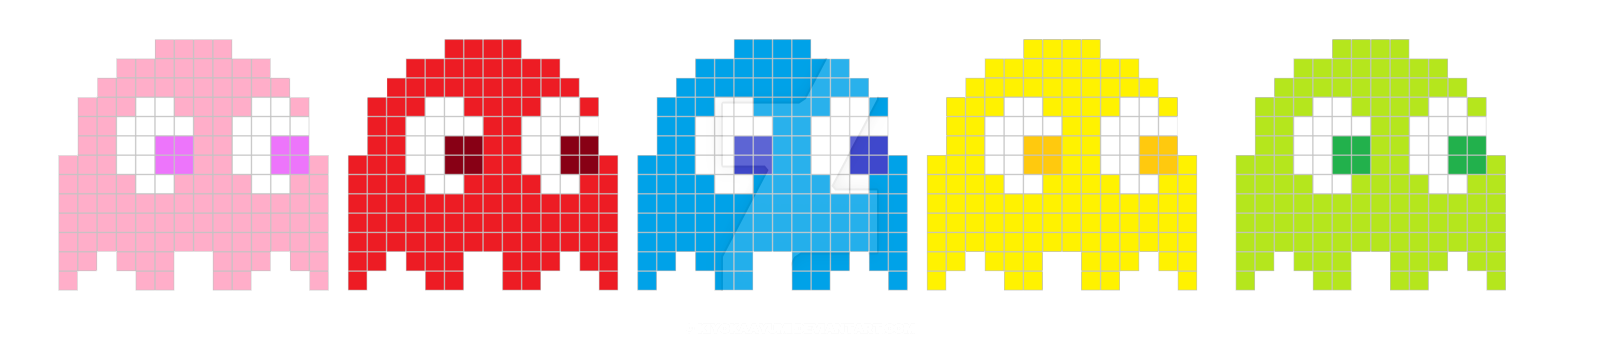 pac man png images transparent free download pngmartcom pac man ghost png 1600 356 1